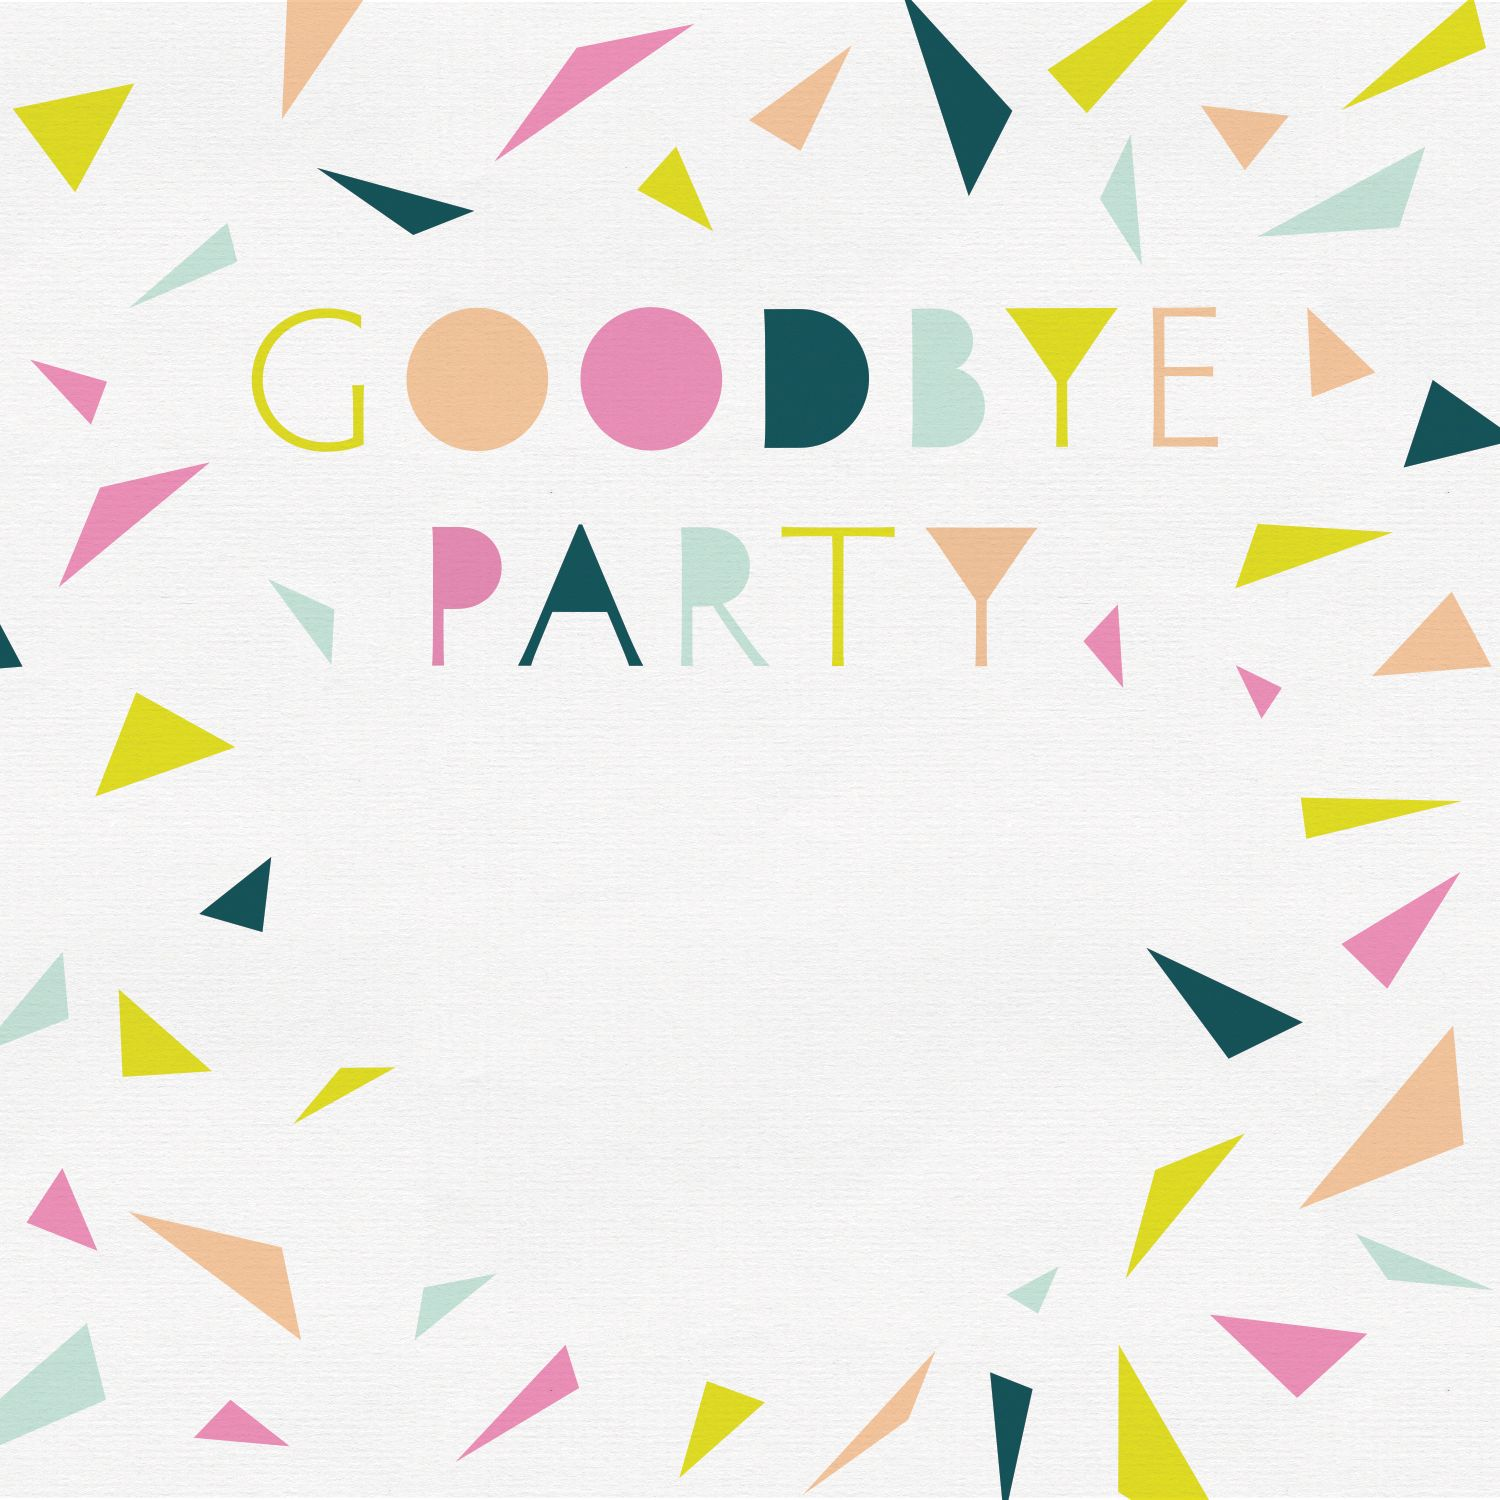 Goodbye Party Retirement Farewell Party Invitation Template